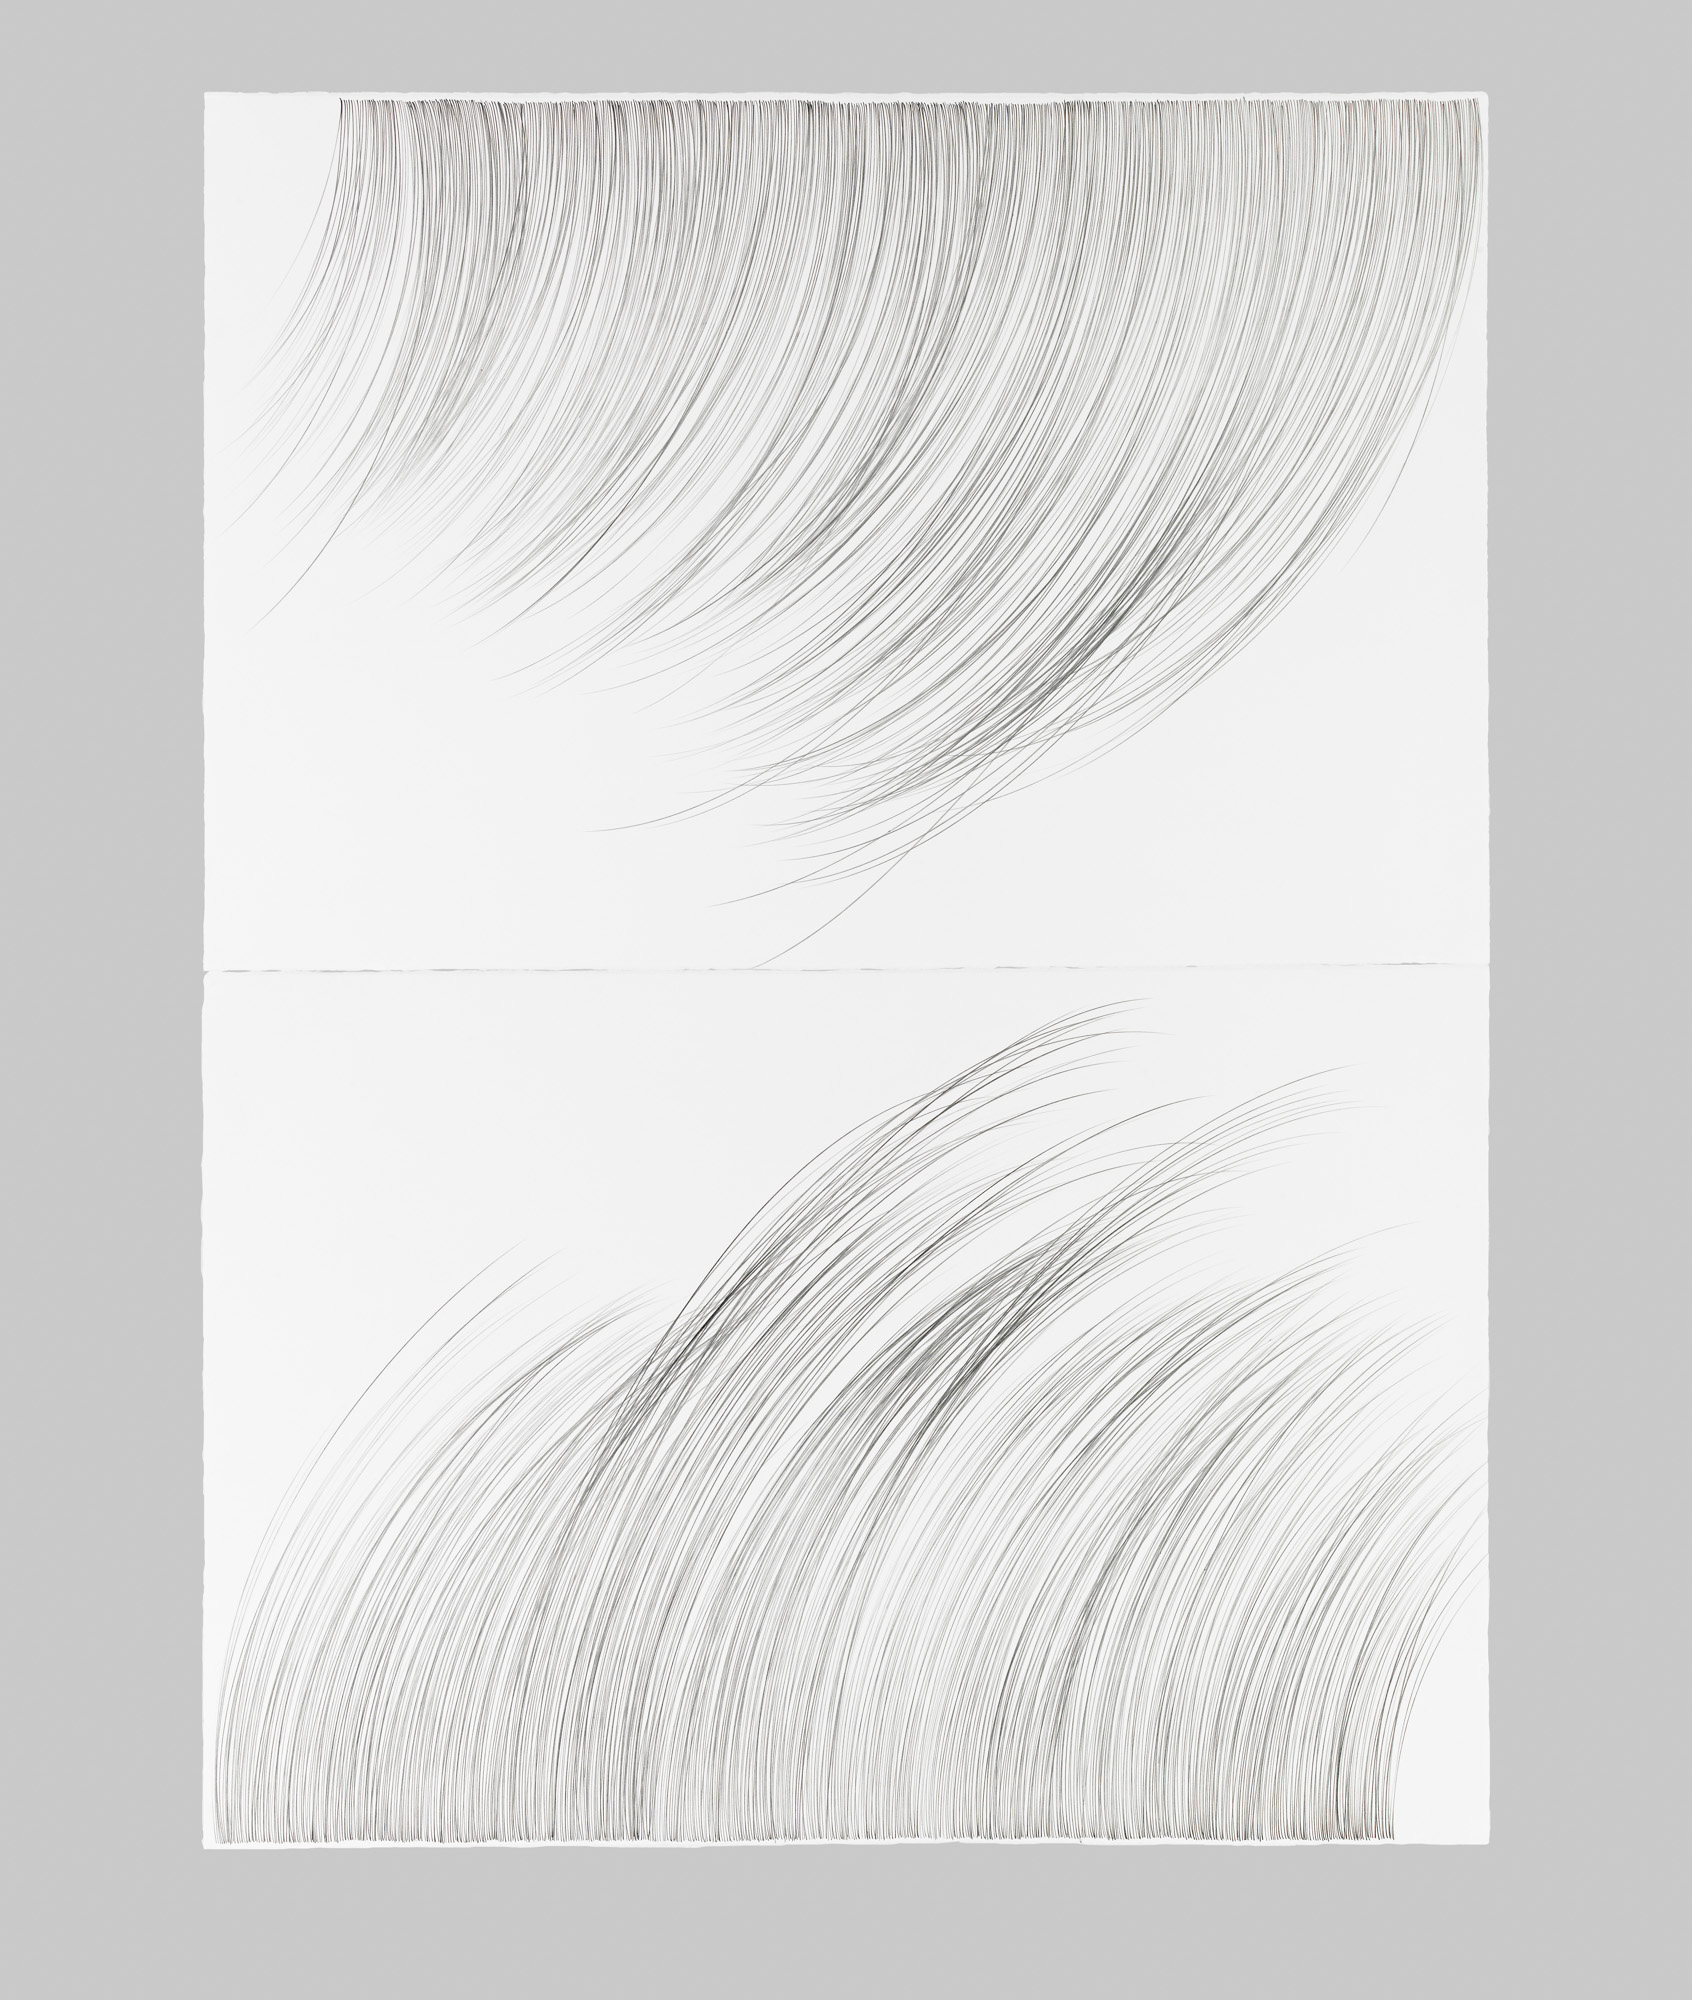 Large RainGrass, II   Graphite on cotton paper, 60 x 44 inches, diptych, 2015